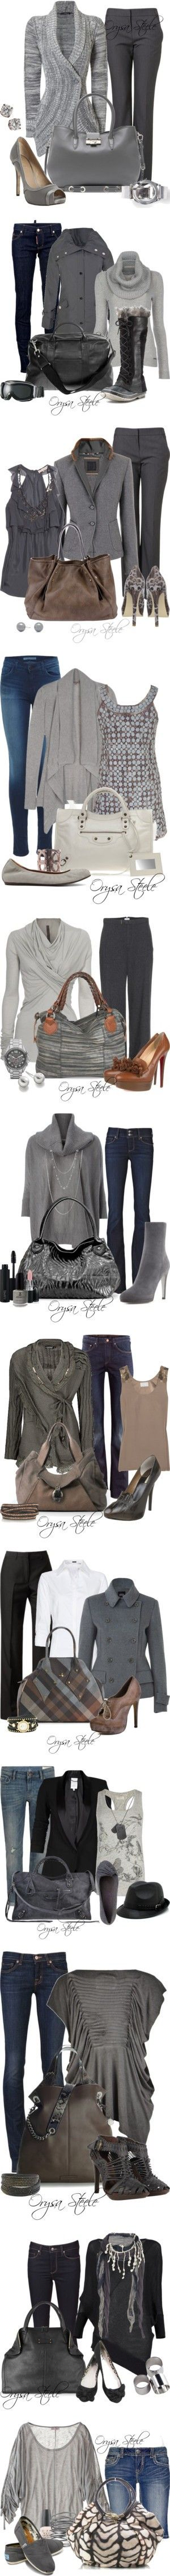 """Shades of Grey"" by orysa on Polyvore"